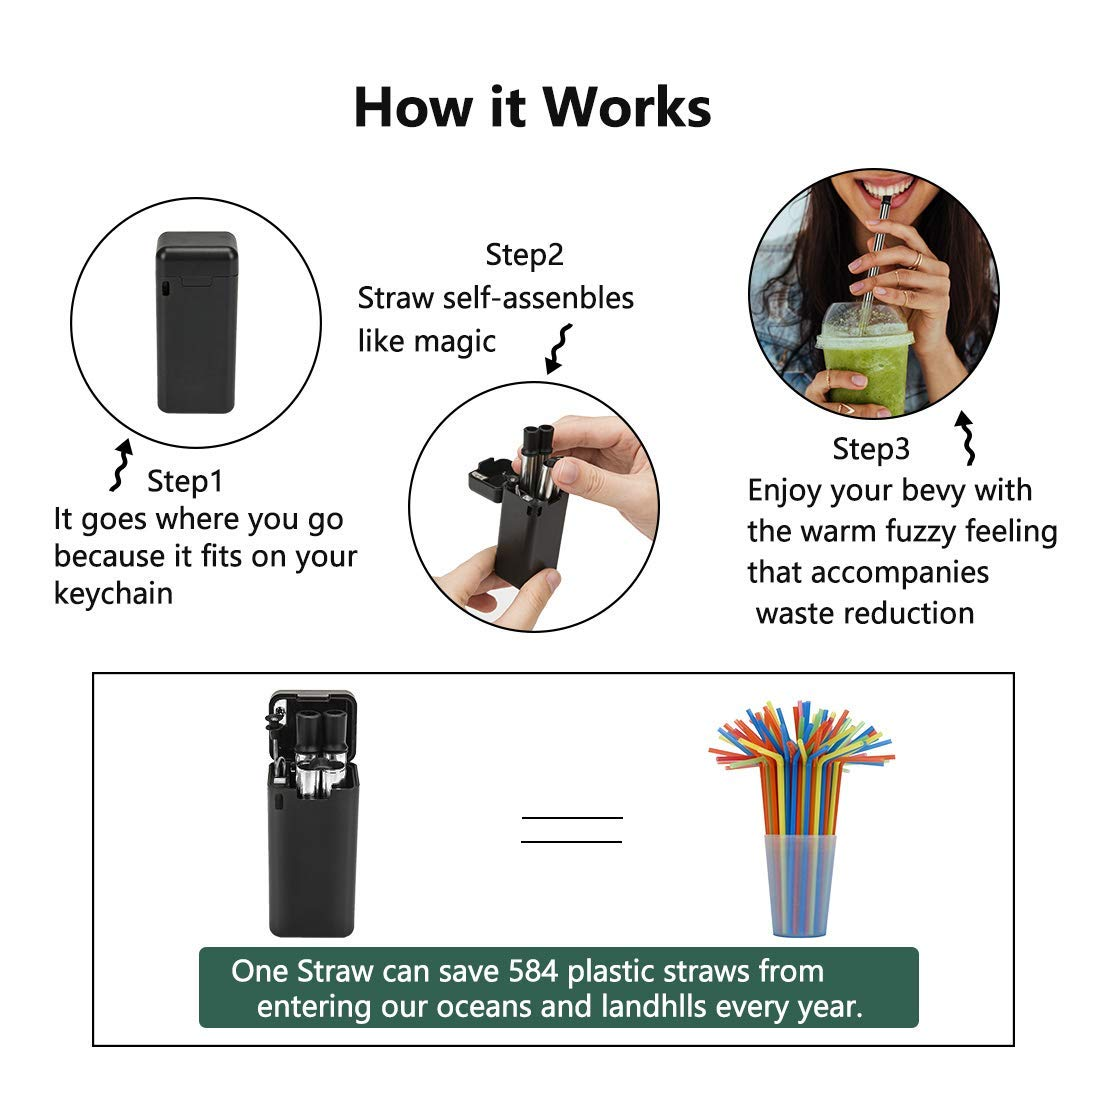 Flysea Collapsible Reusable Drinking Straw, Stainless Steel Food-Grade Folding Straws Portable Travel Straws with Hard Case Holder & Cleaning Brush BPA Free, 1 Pack of Green